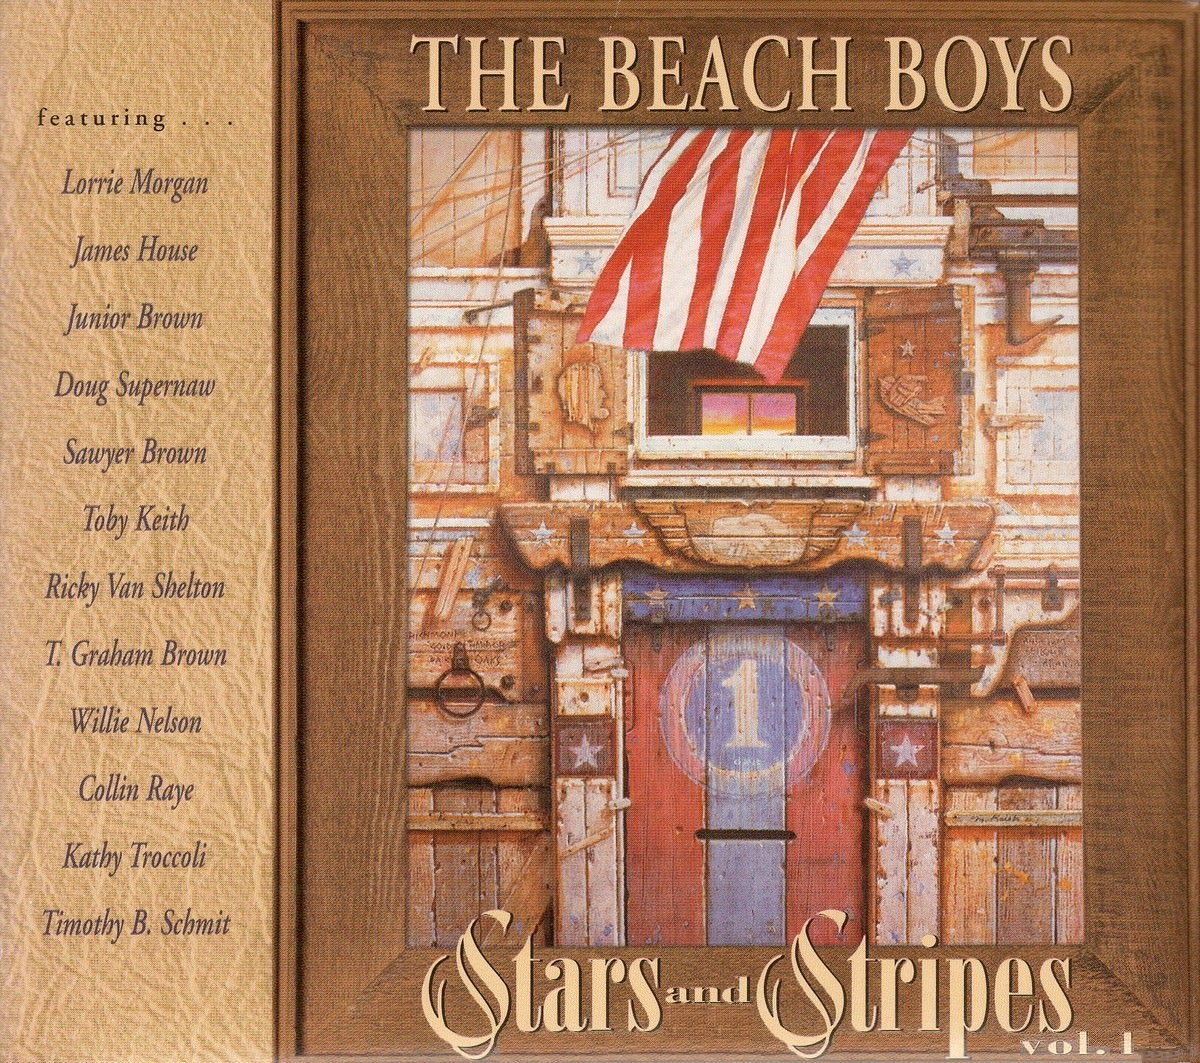 Stars And Stripes Volume 1 cover